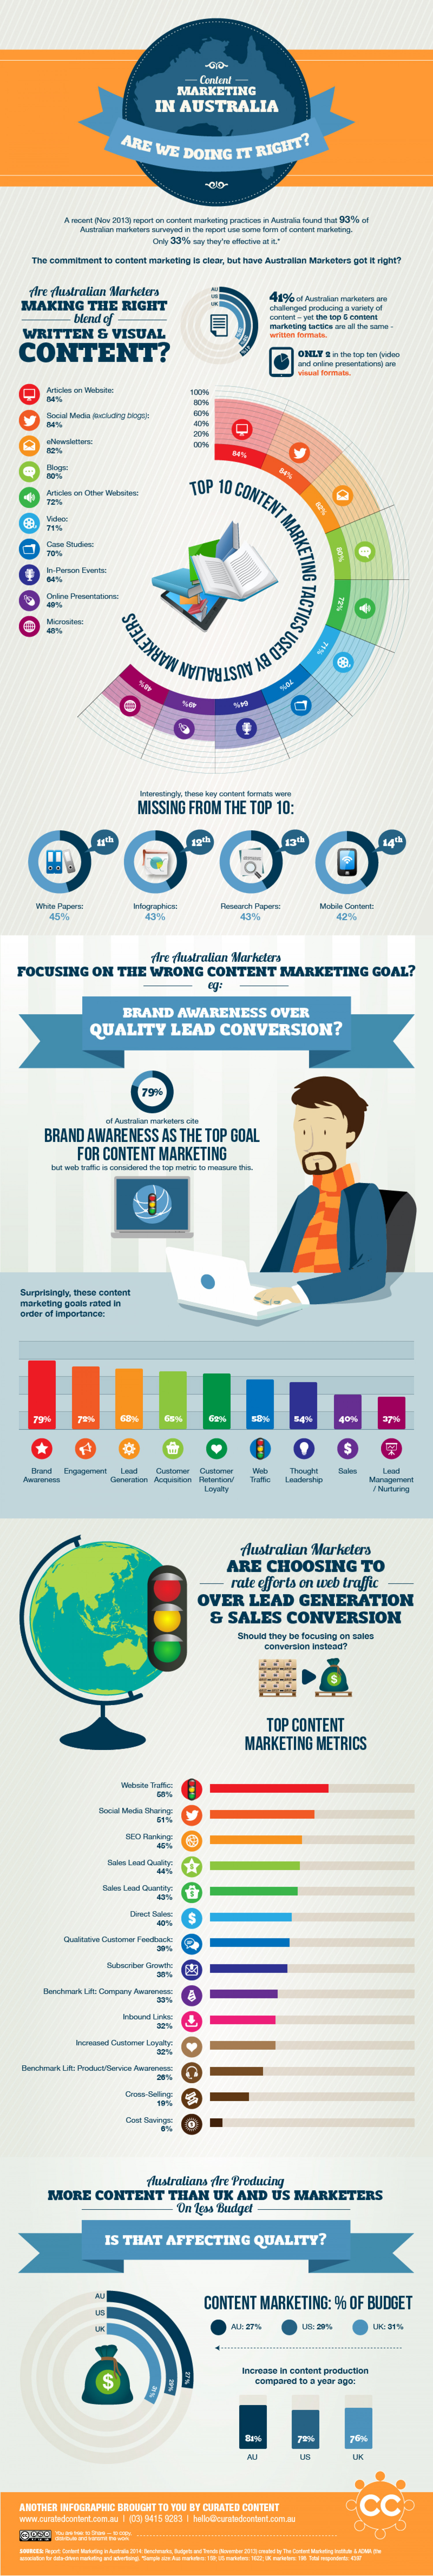 Content Marketing in Australia: Are We Doing it Right? Infographic